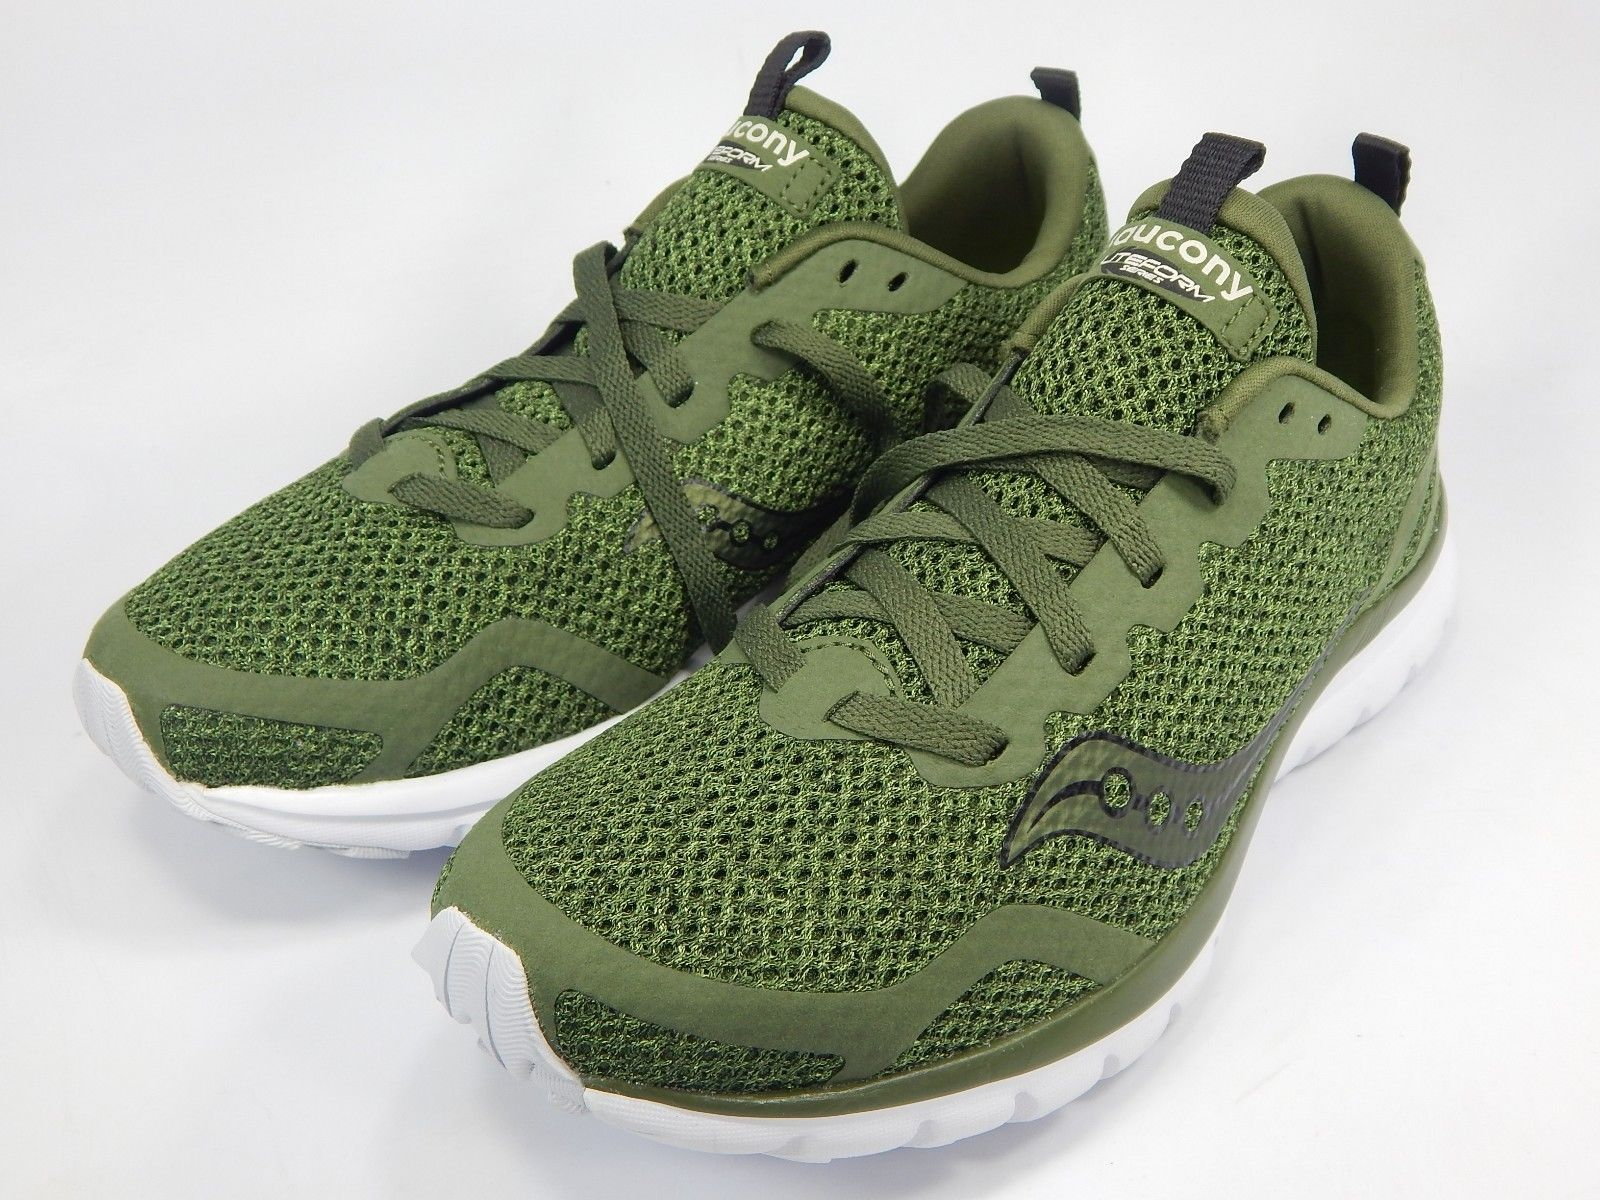 Saucony Liteform Feel Women's Running Shoes Size US 8 M (B) EU 39 Olive S30008-9